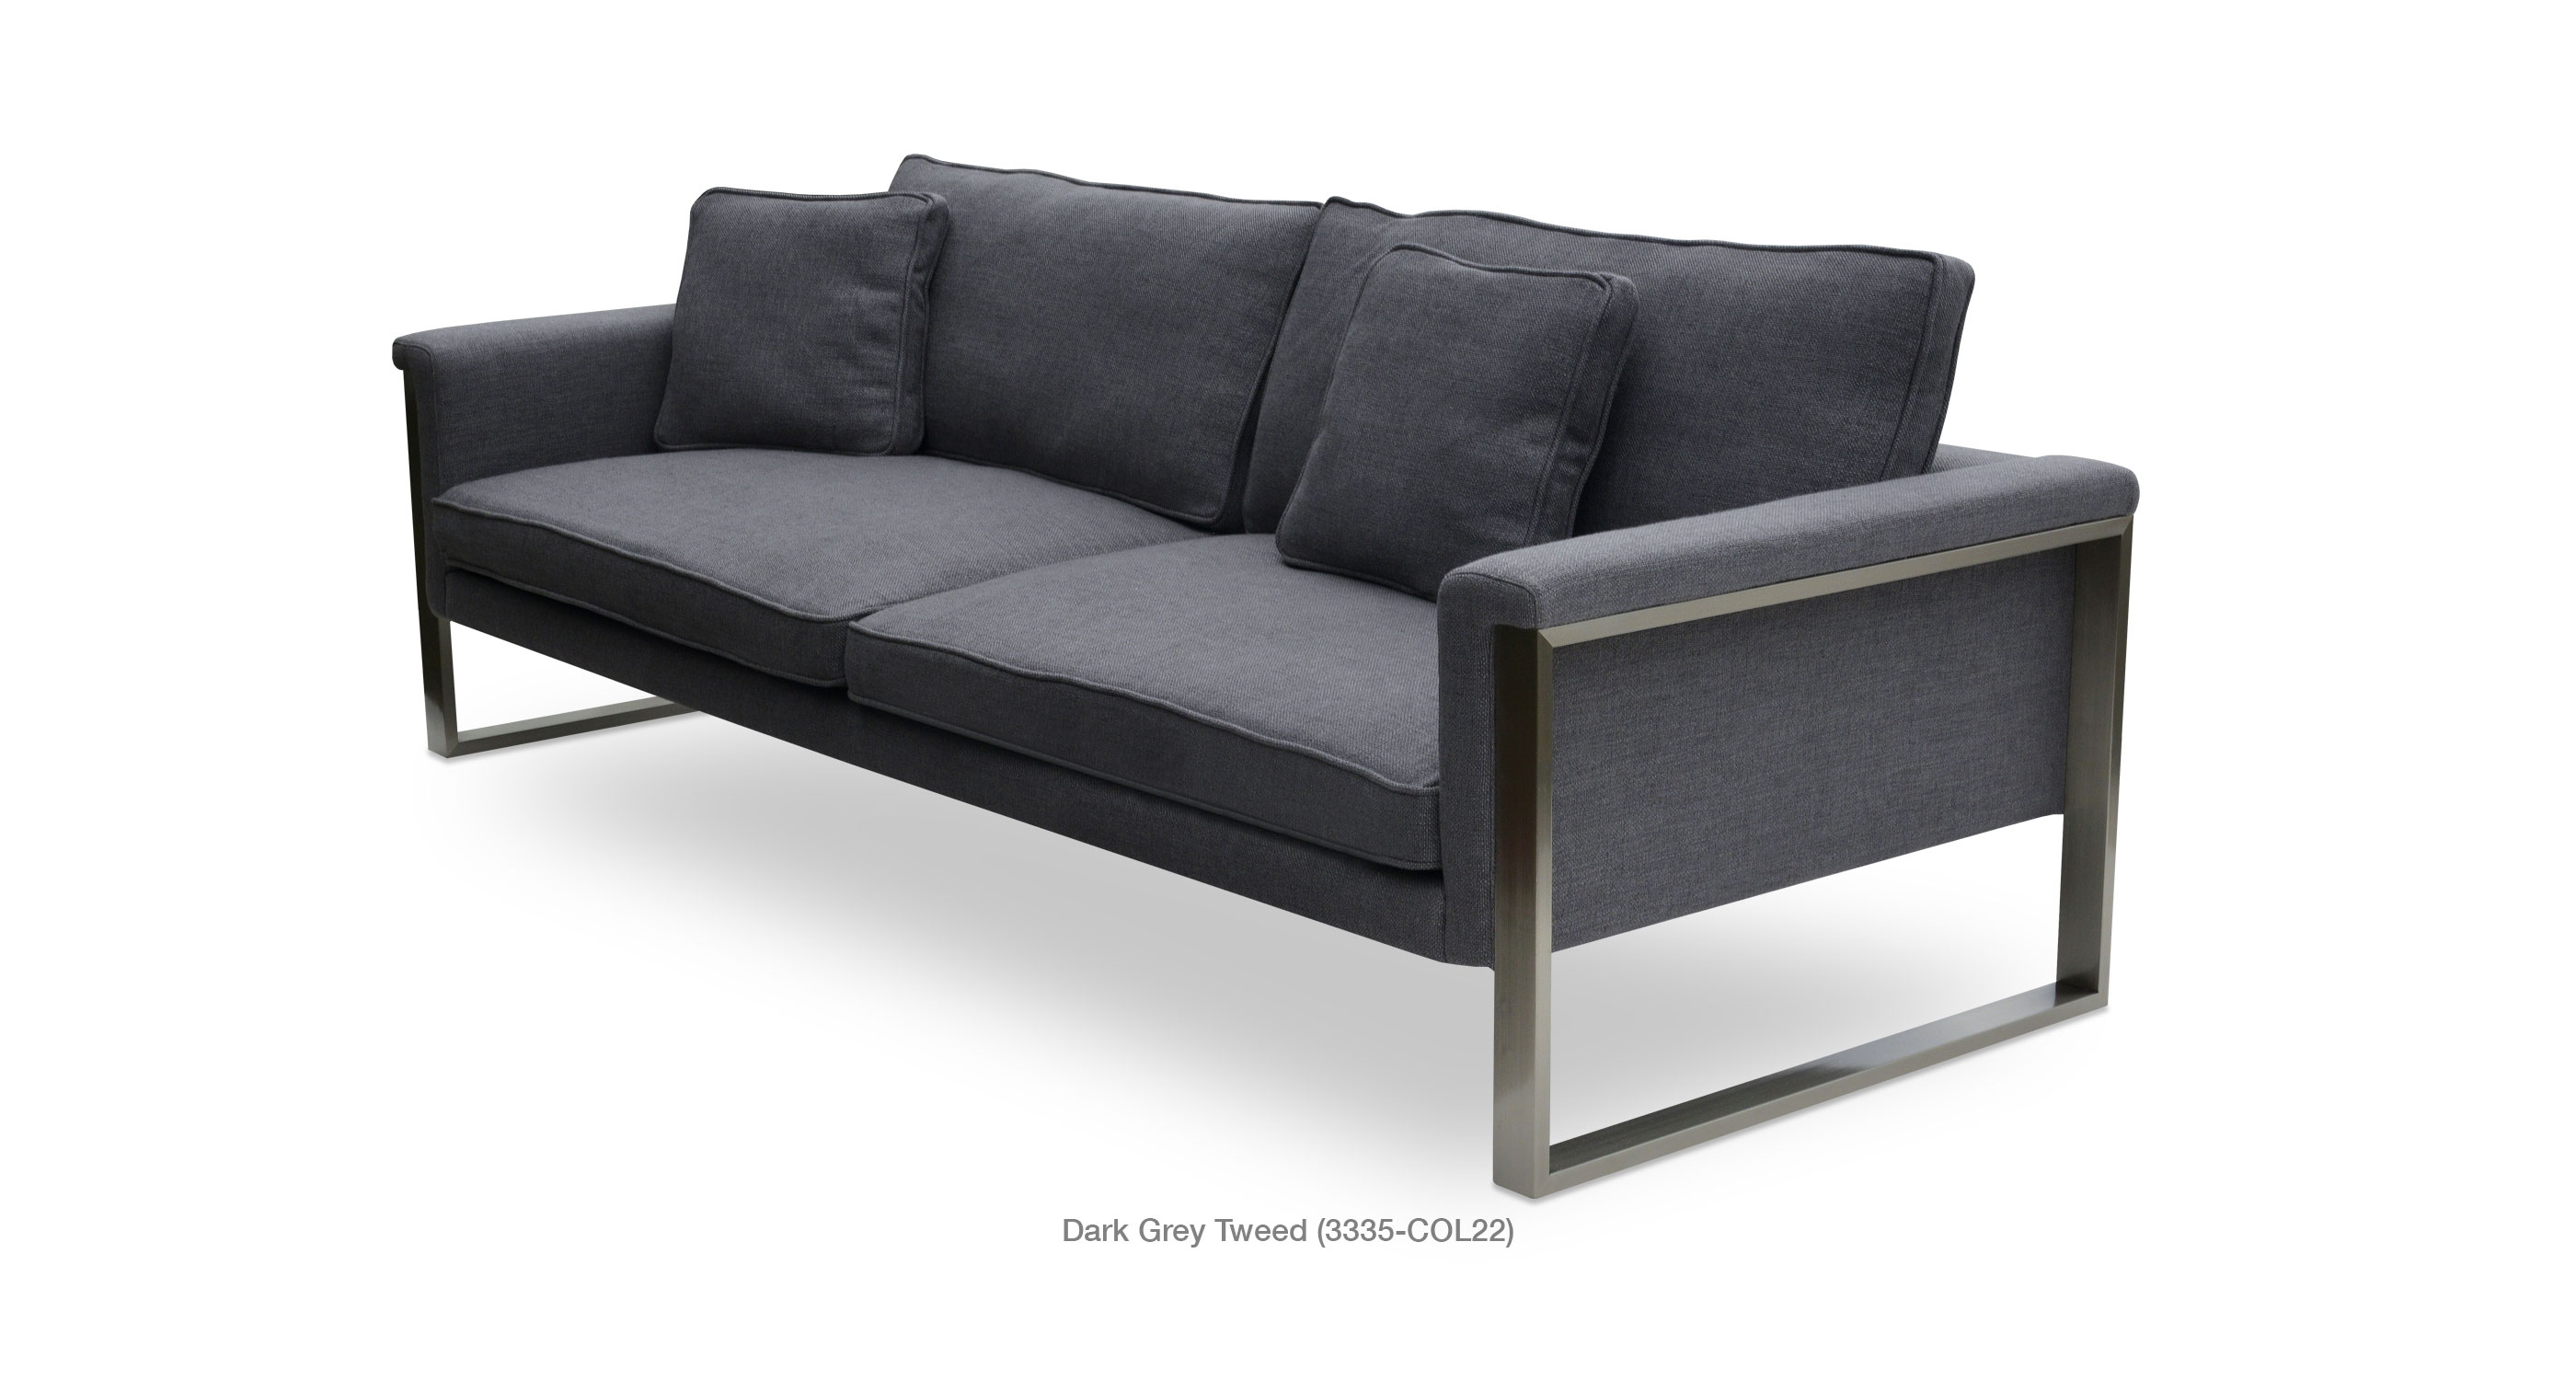 Boston Sofa dark grey tweed